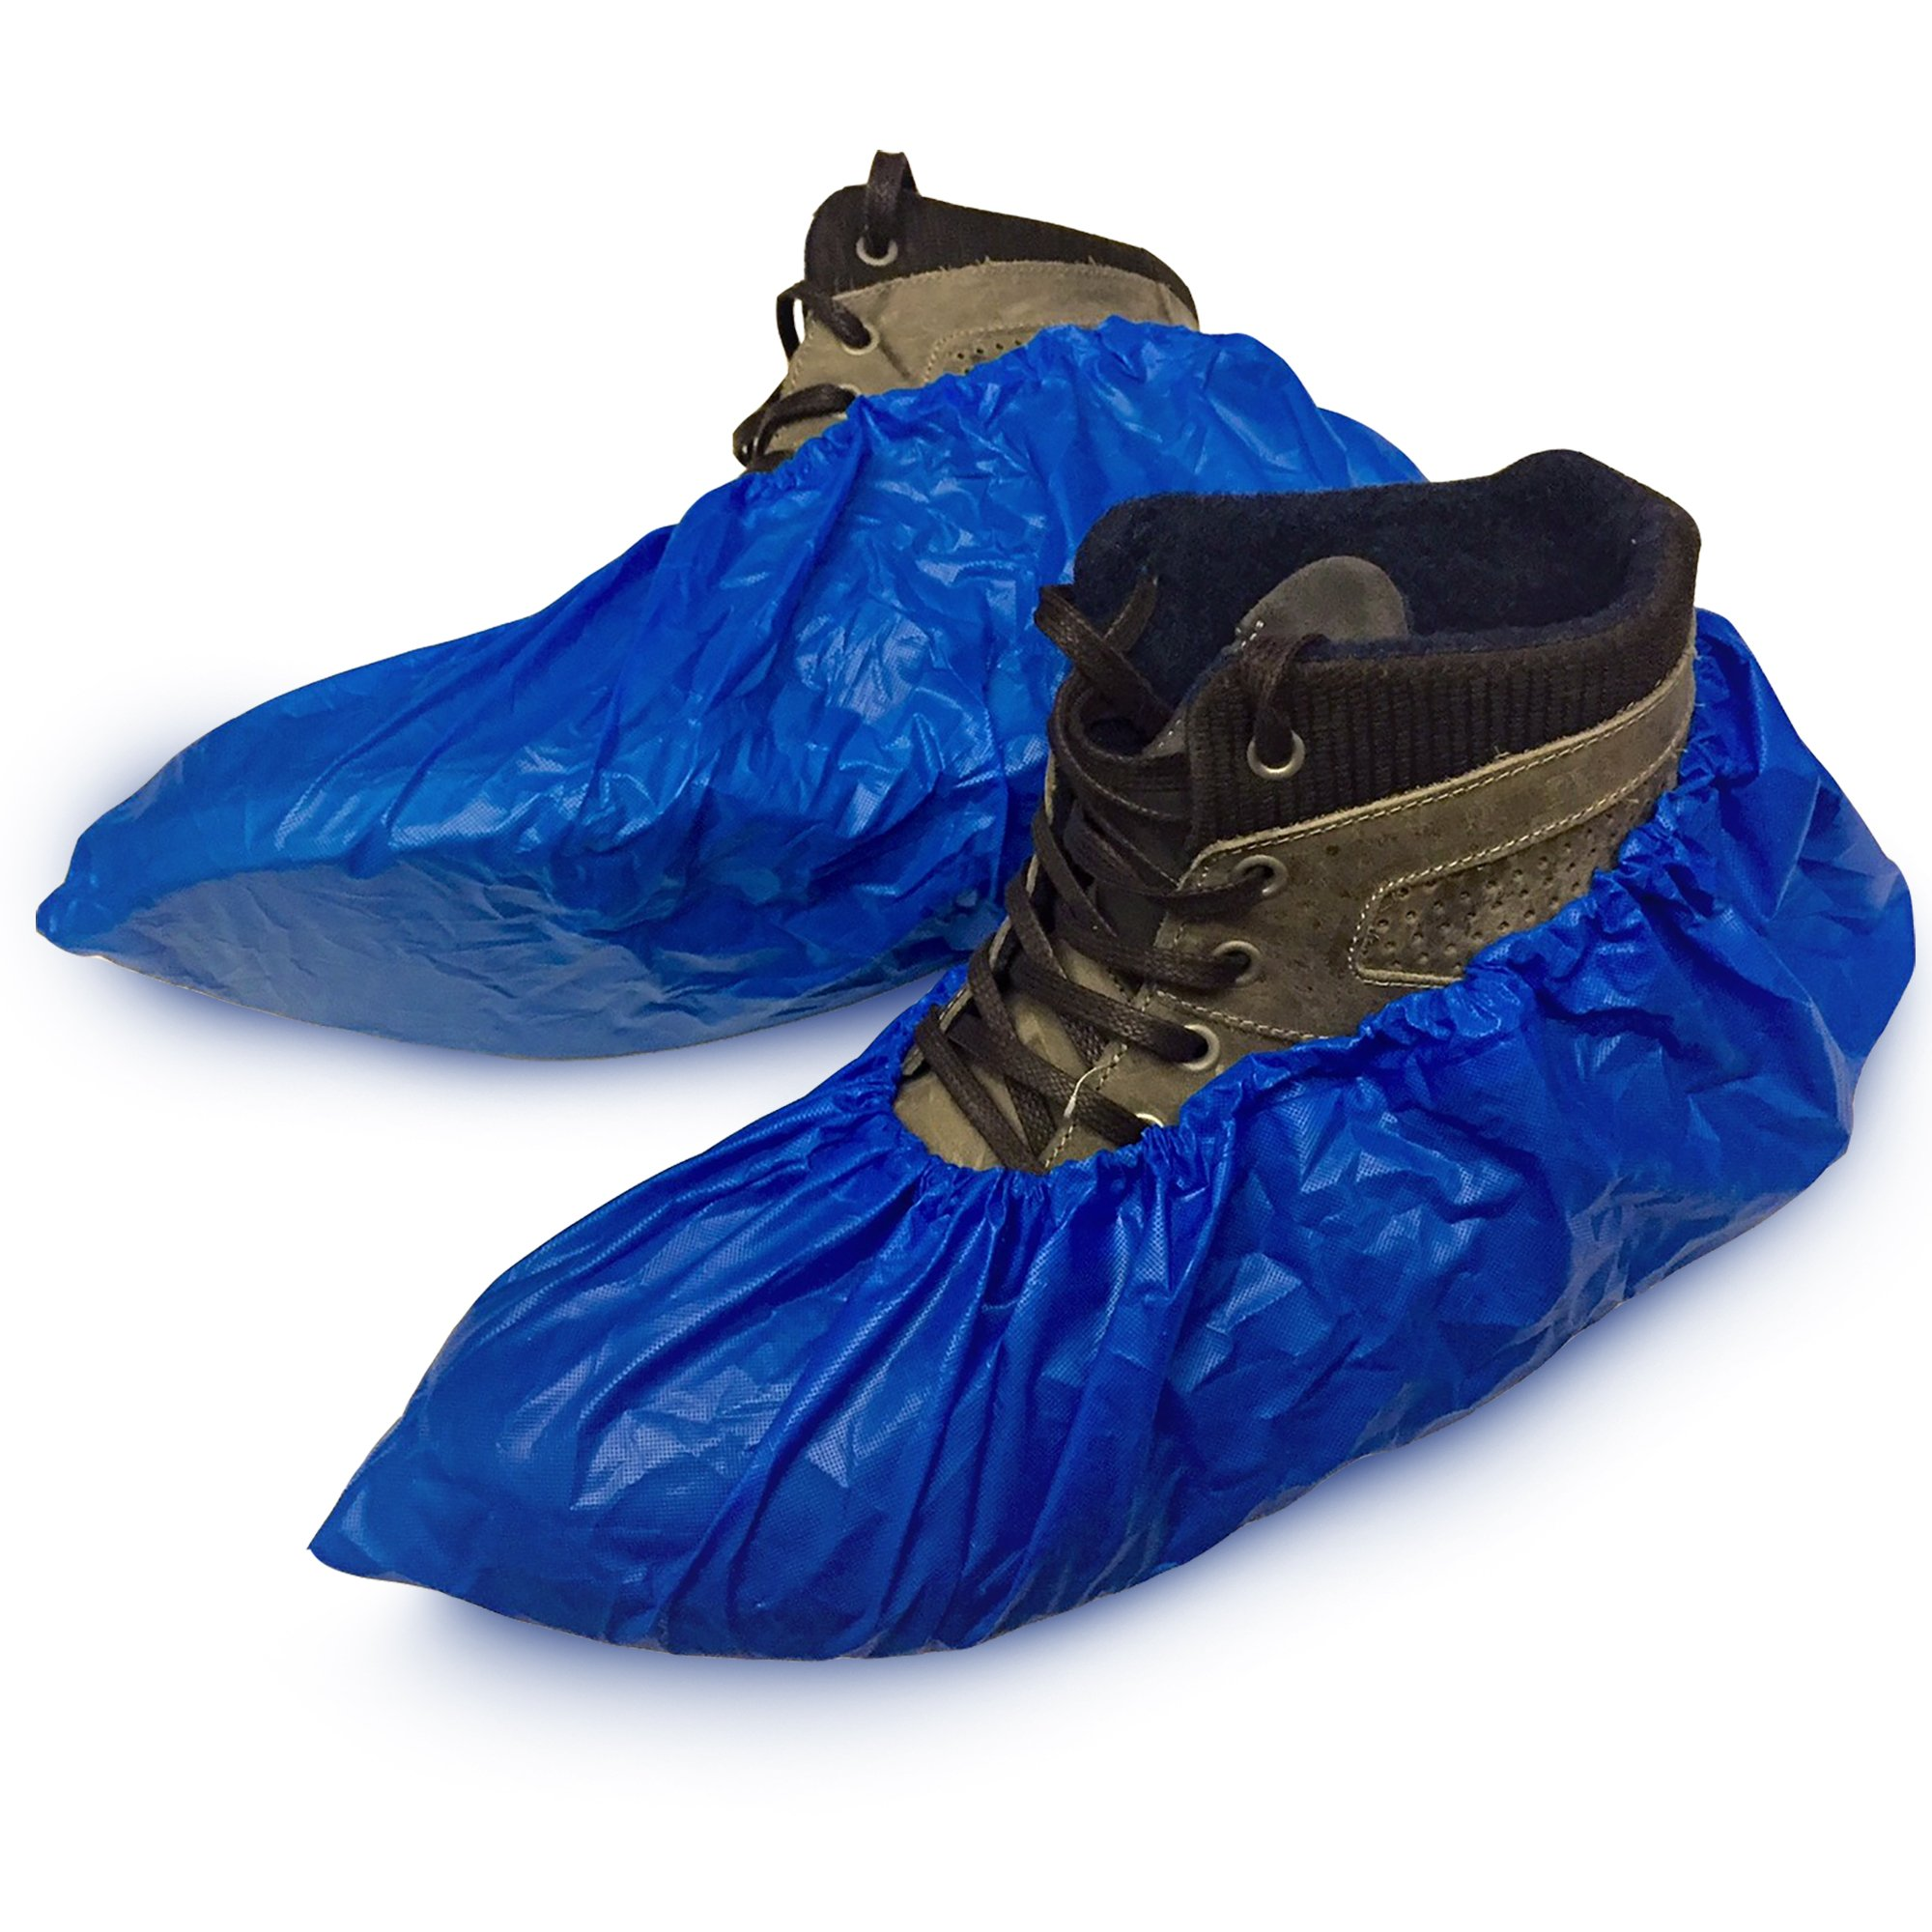 XL Water Proof Boot Shoe Covers - Fits Shoes and Boots Sizes 5-13 - Indoor/Outdoor Water Resistant Reusable Disposable Medical Booties - 100 Per Pack (50 Pairs)